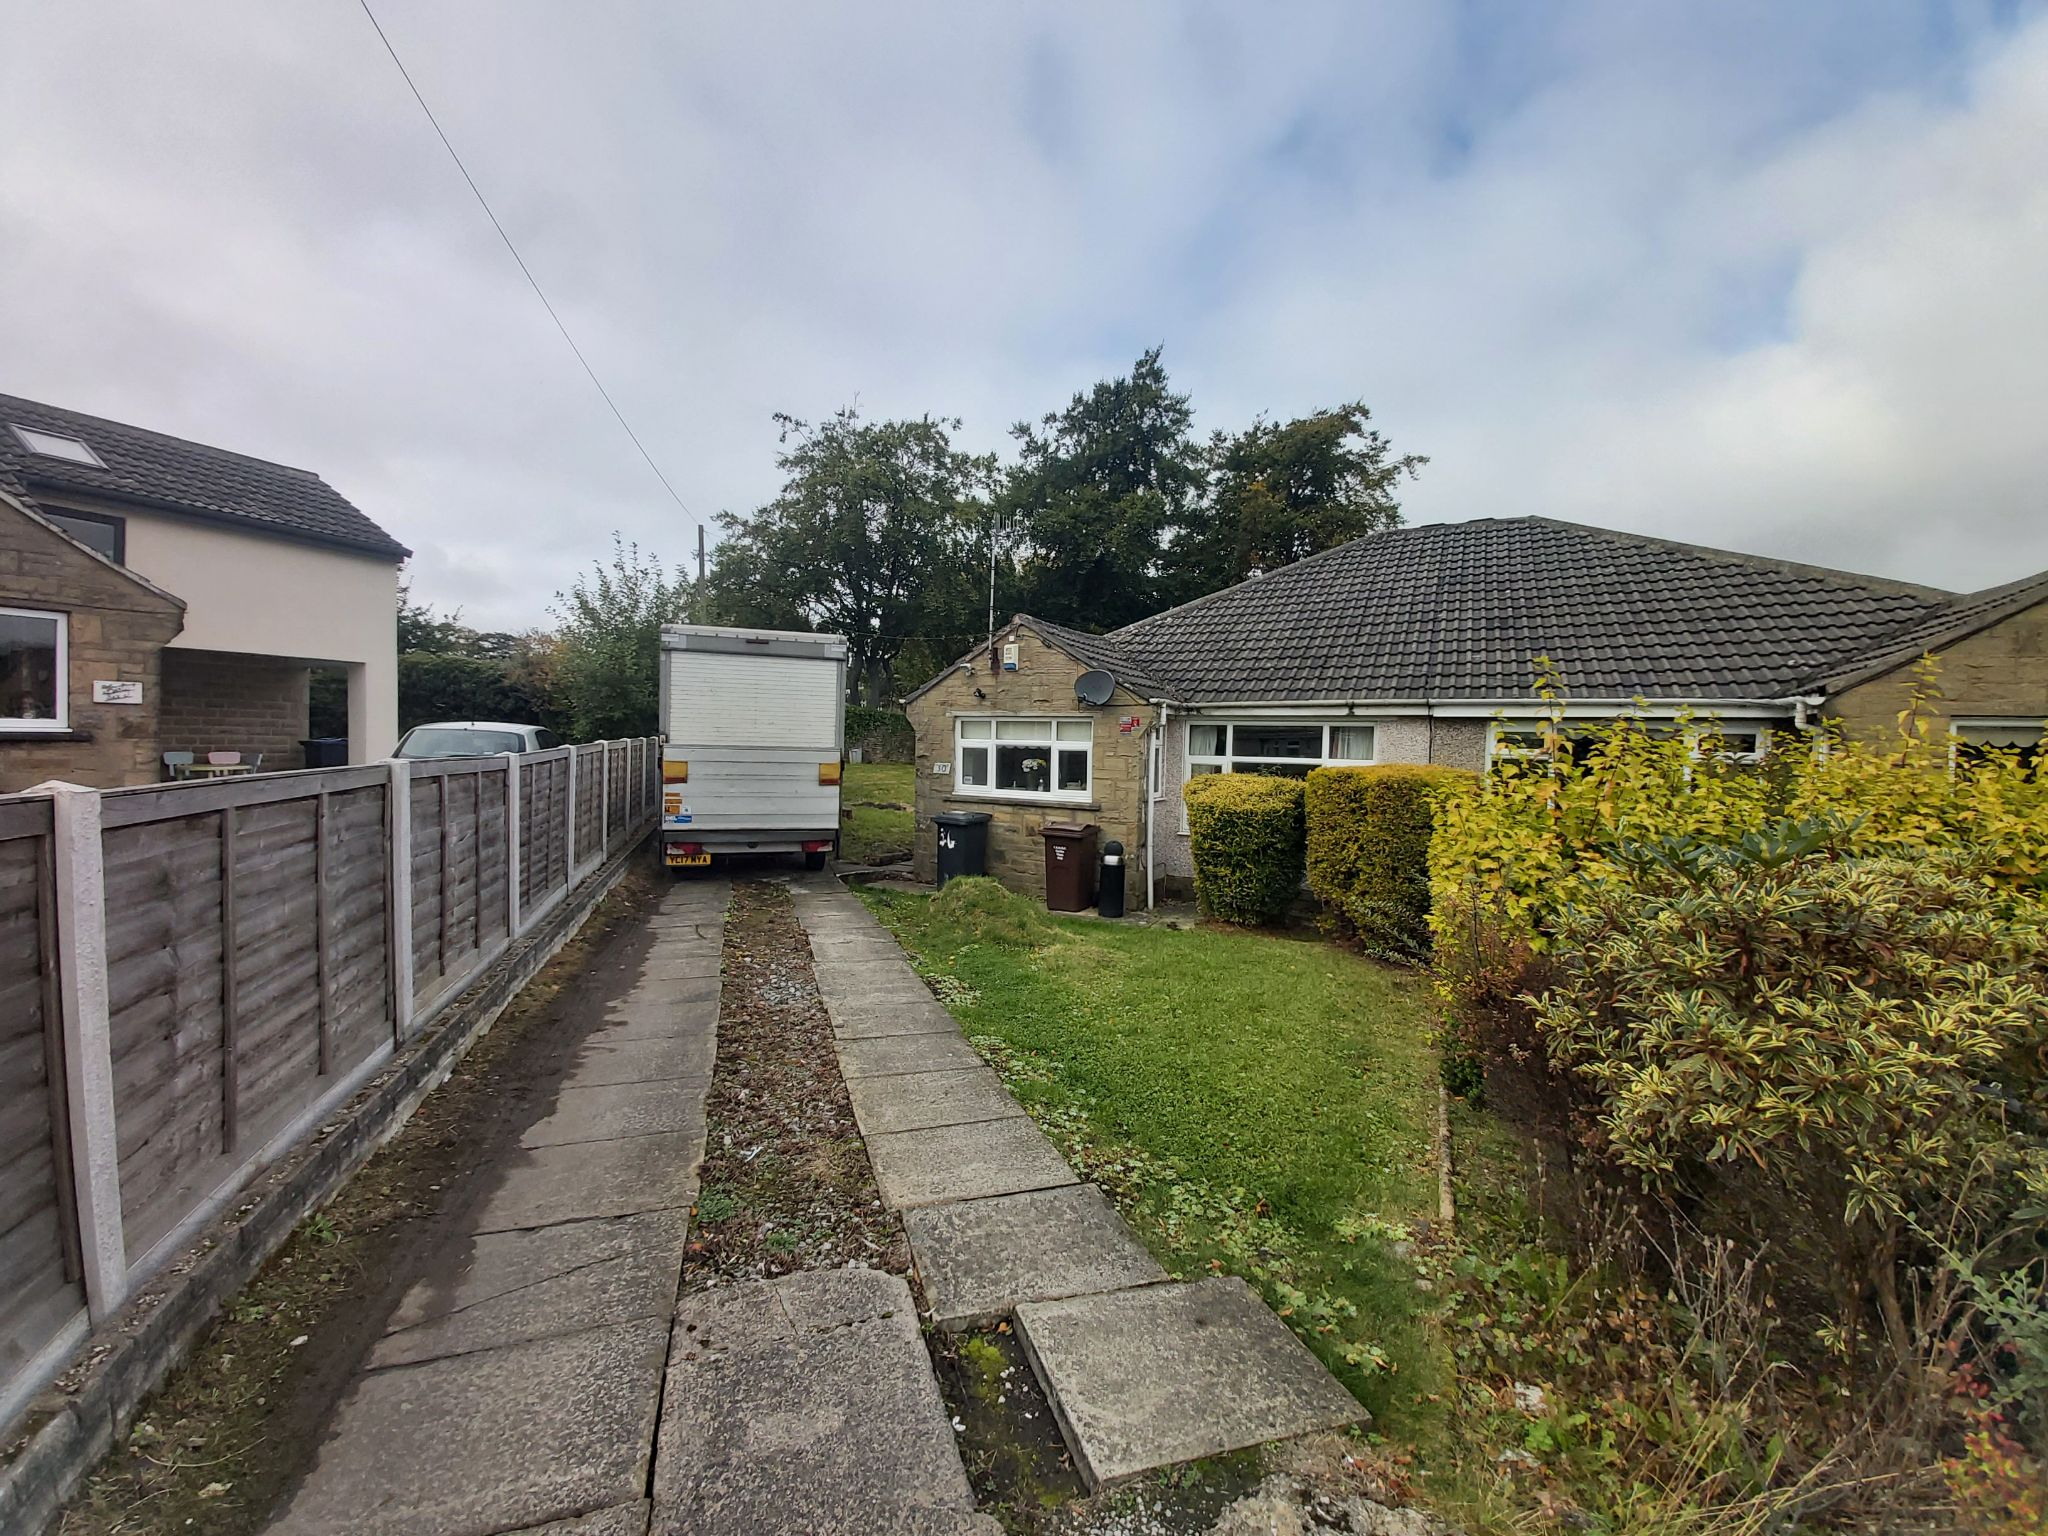 2 bedroom semi-detached bungalow For Sale in Bradford - Photograph 1.